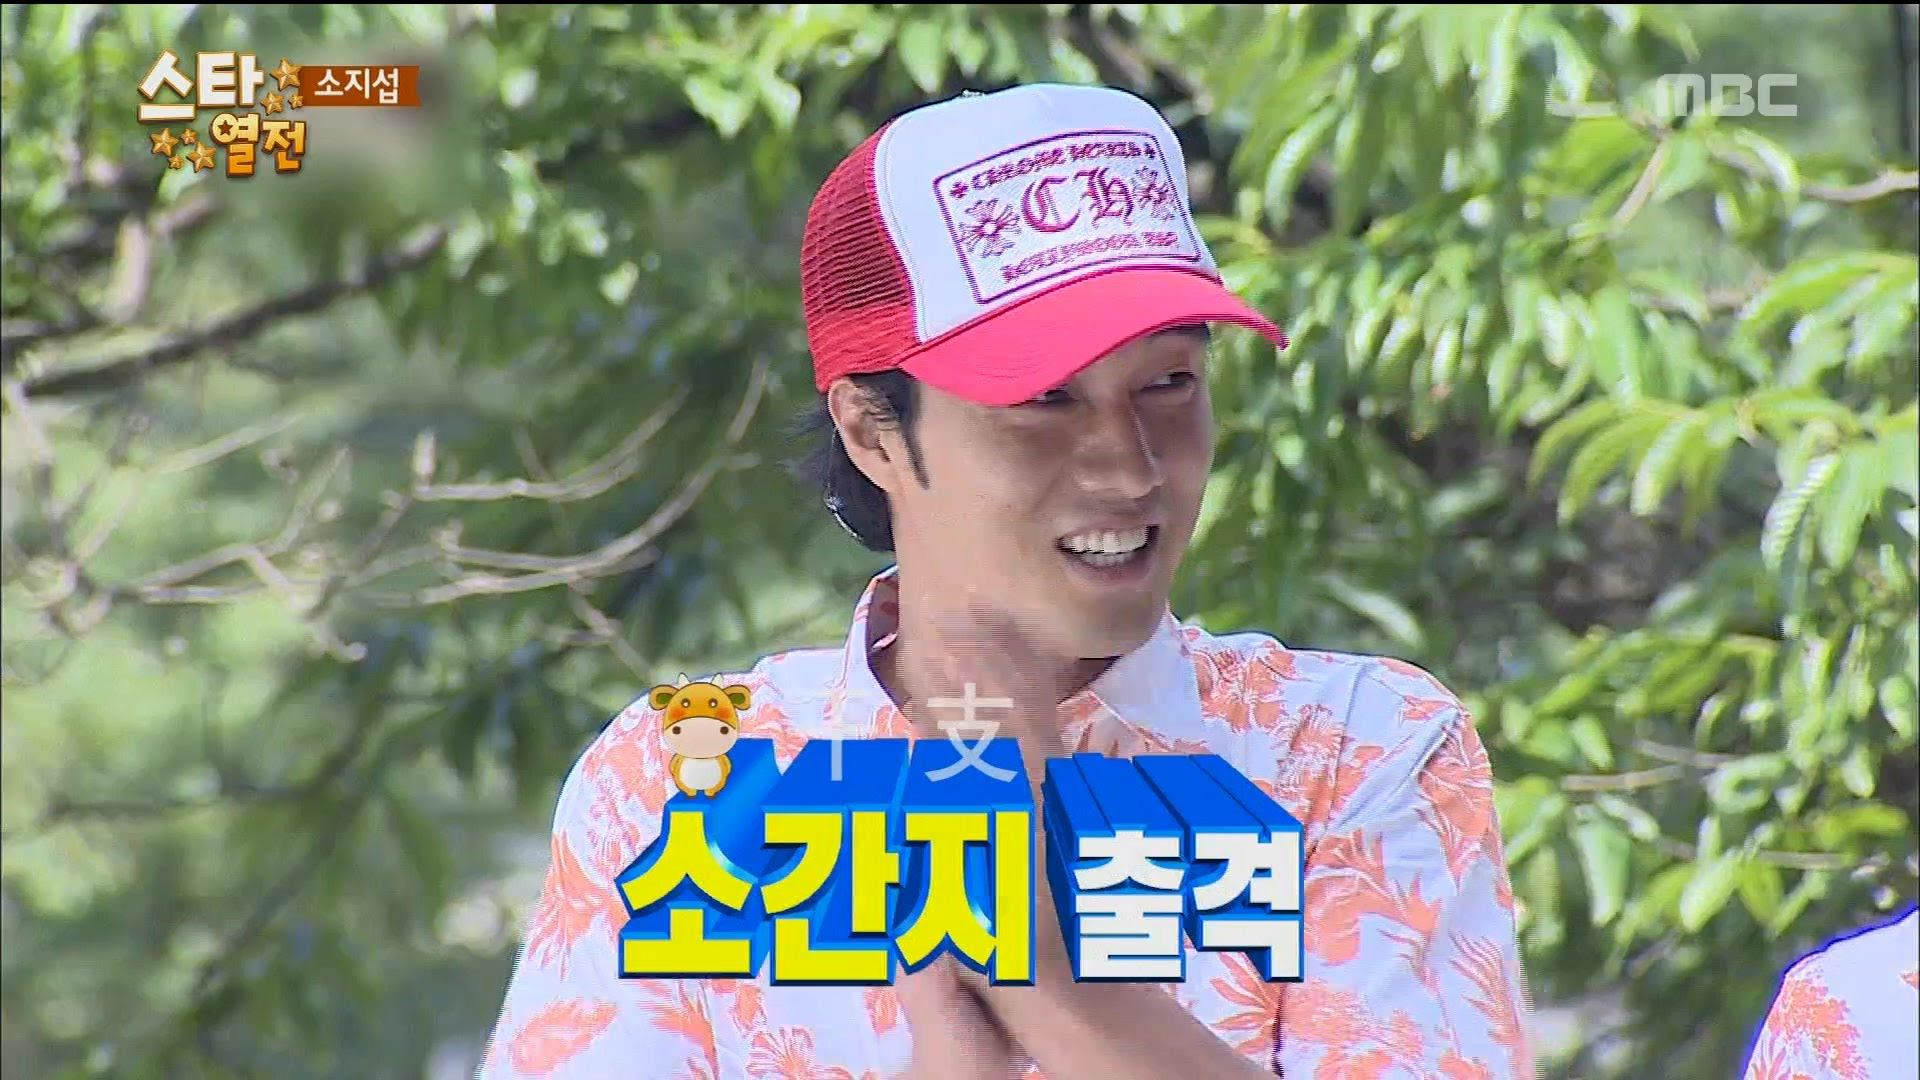 [Happy Time 해피타임] charming man 'So Ji-sub' 소지섭의 반전 매력! 20150802...so playful, so down-to-earth...